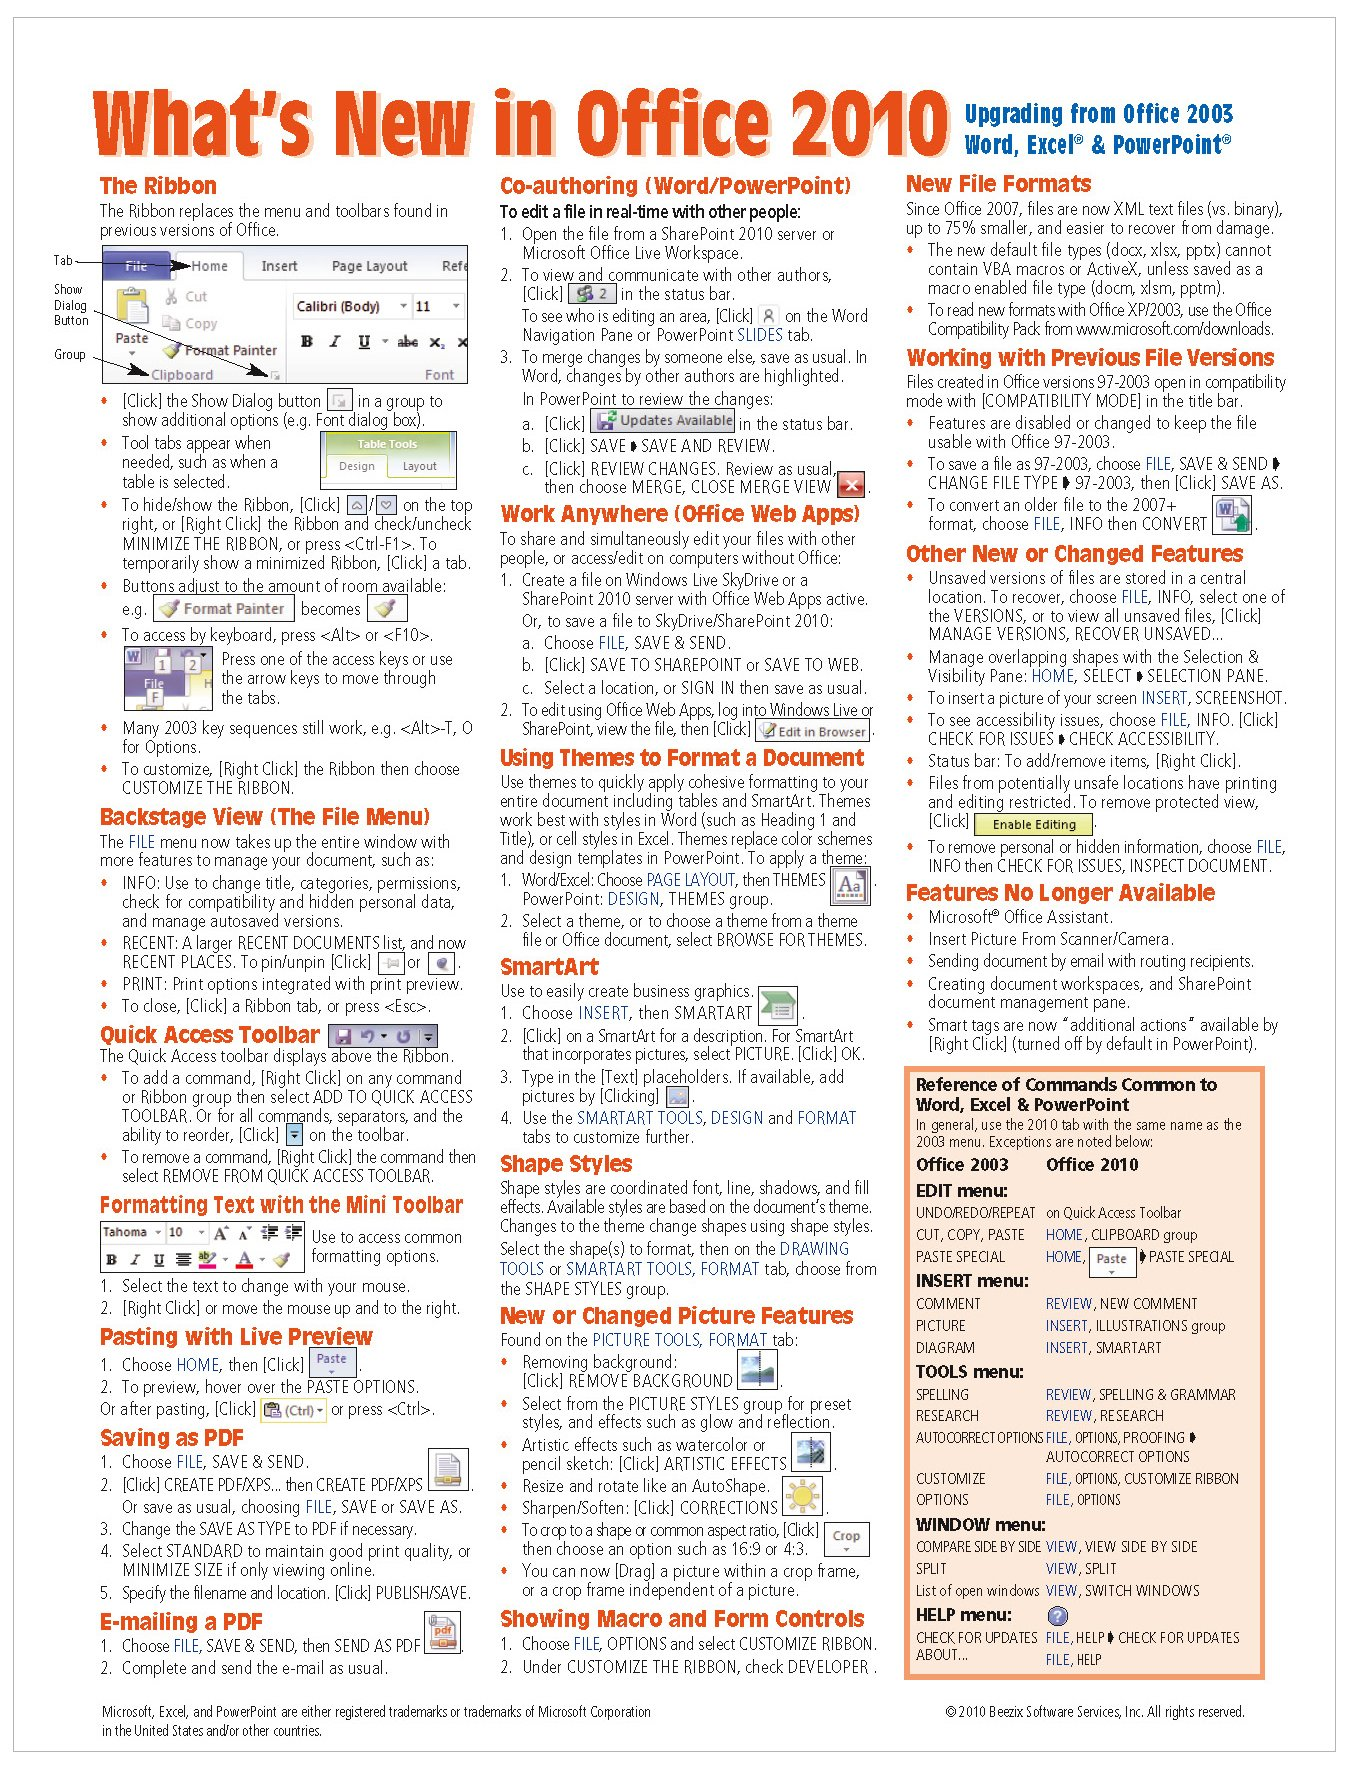 Read Online What's New in Microsoft Office 2010 (from 2003) Quick Reference Guide (Cheat Sheet of New Features & Instructions - Laminated Guide) pdf